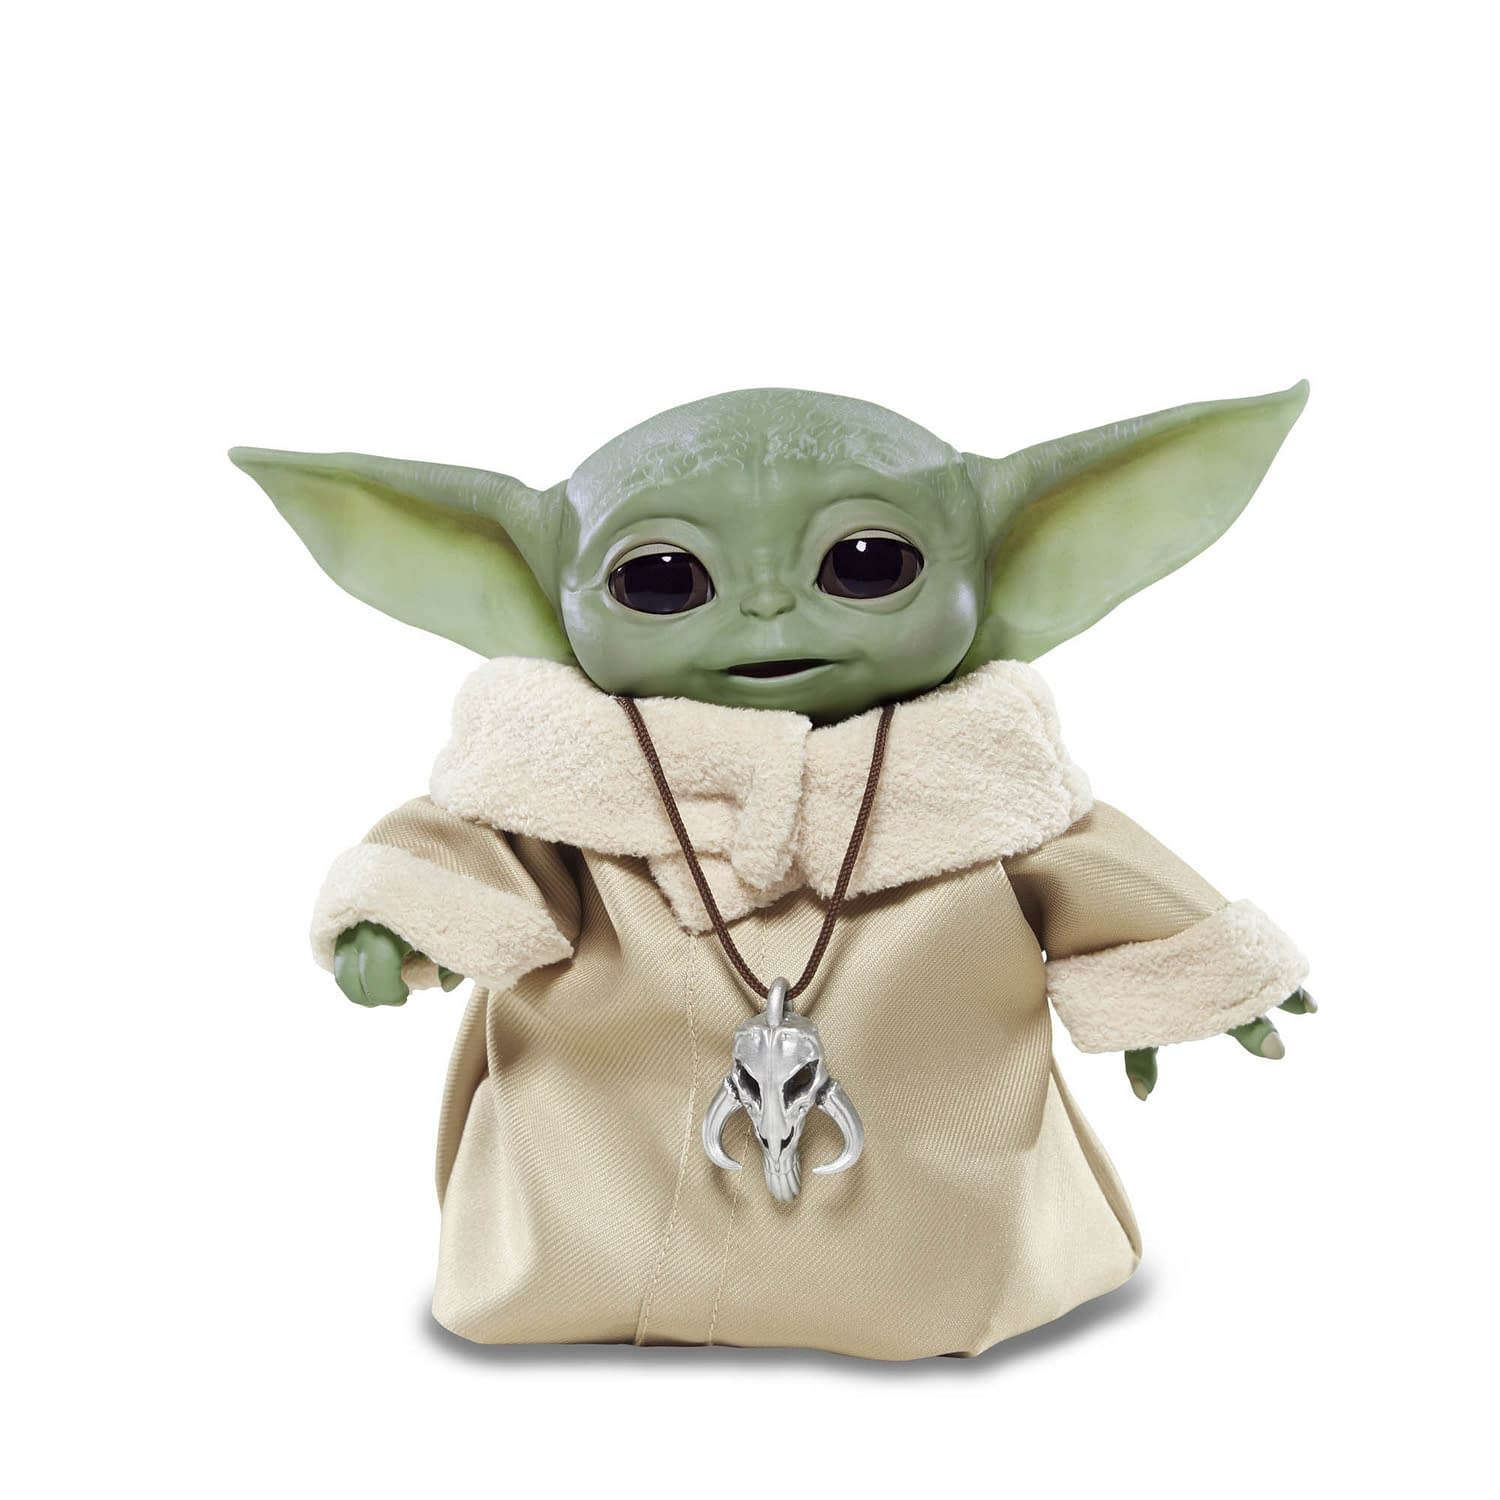 Baby Yoda Comes to Life with New Animatronic Toys from Hasbro